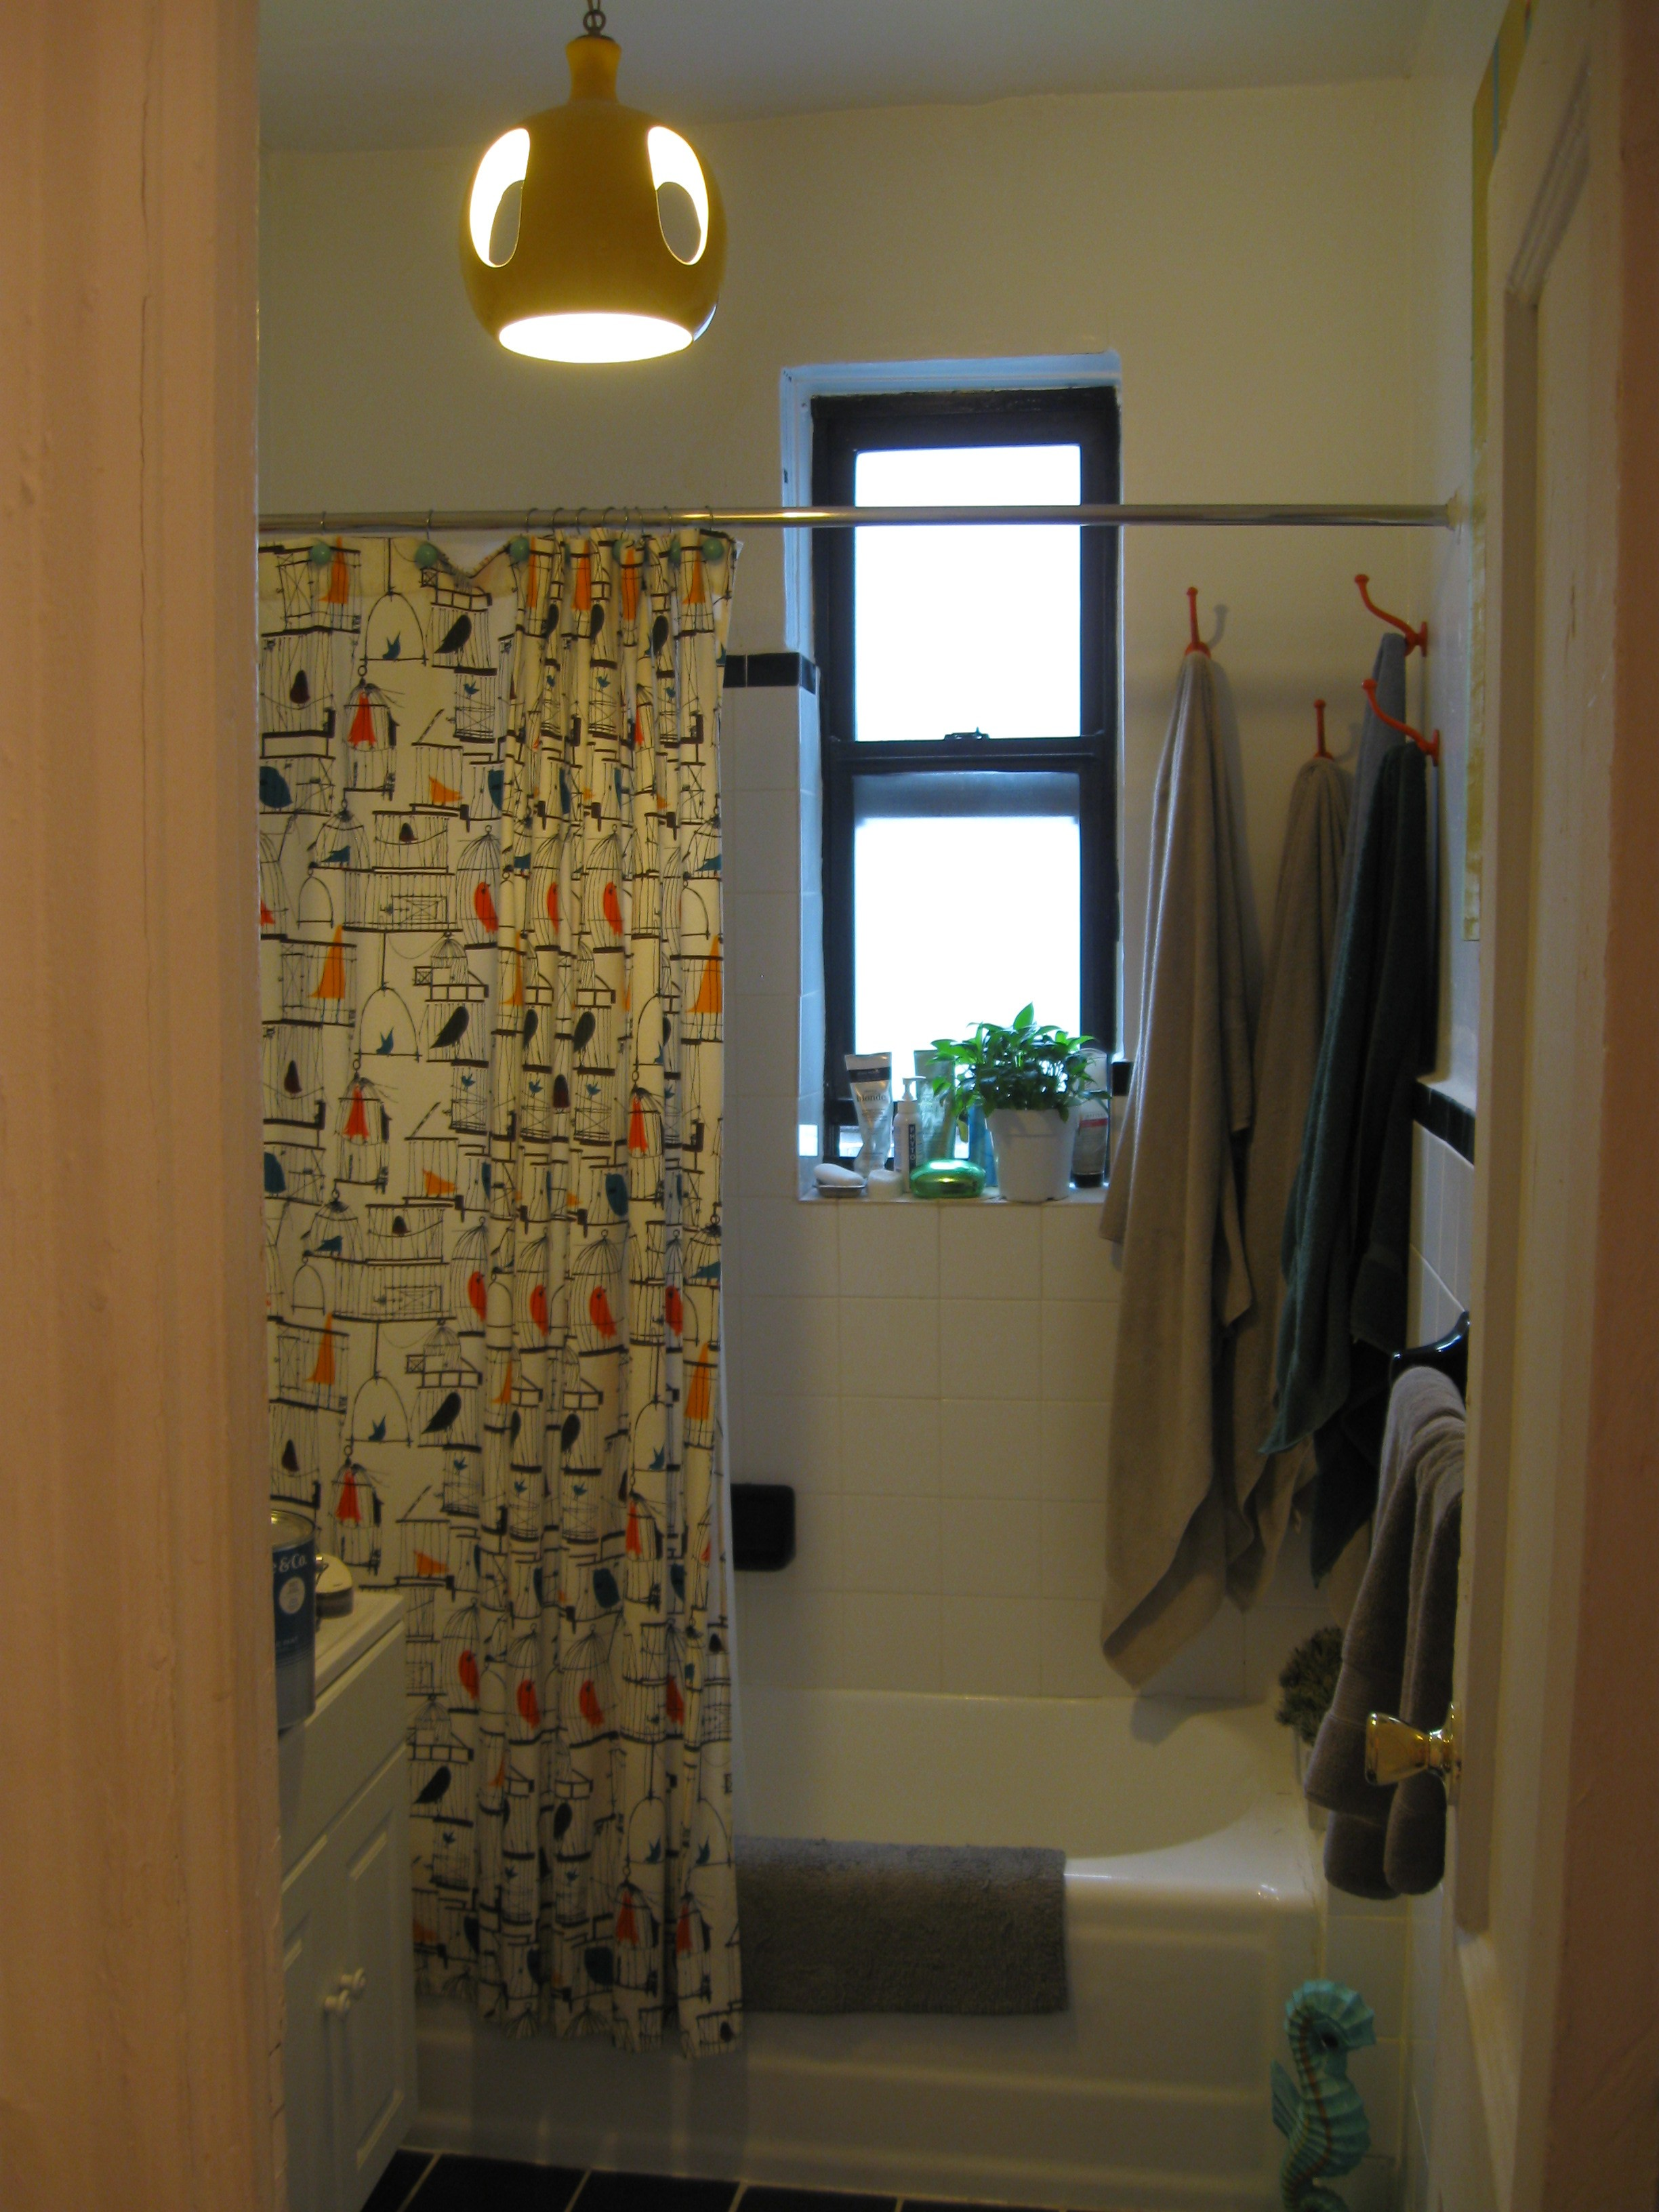 A photo of bathroom wall that will be painted in a fun pattern seen in shower curtain